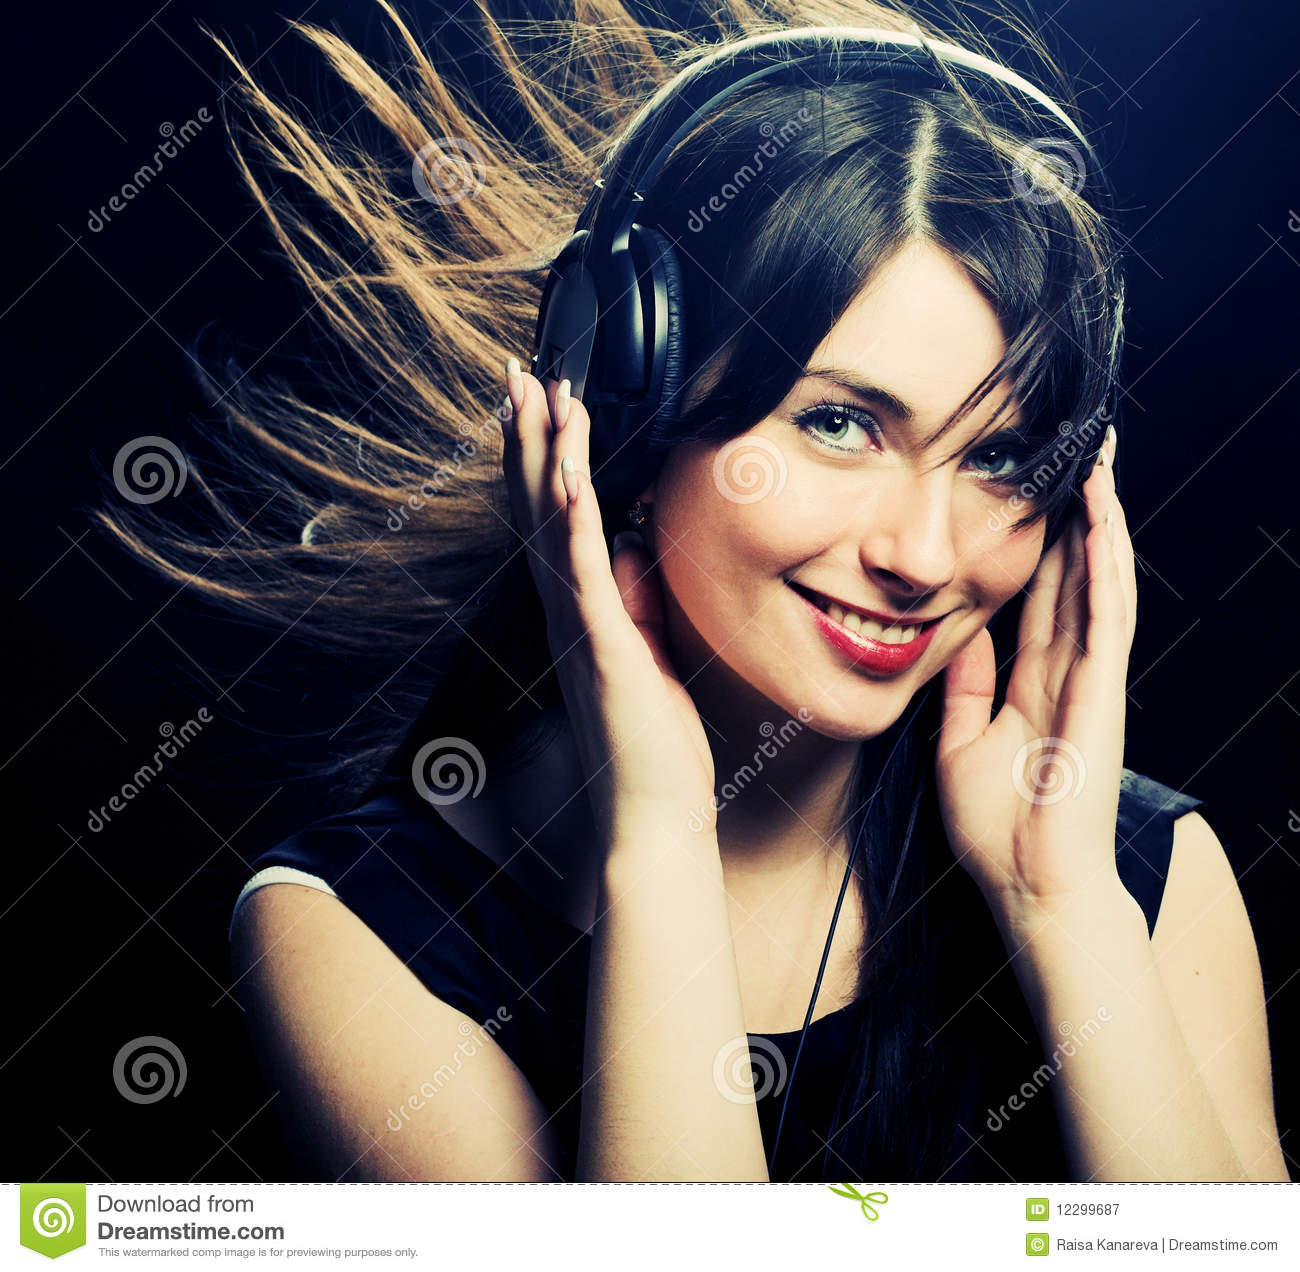 Beautiful Headphones Beautiful Headphones Girl Royalty Free Stock Photography